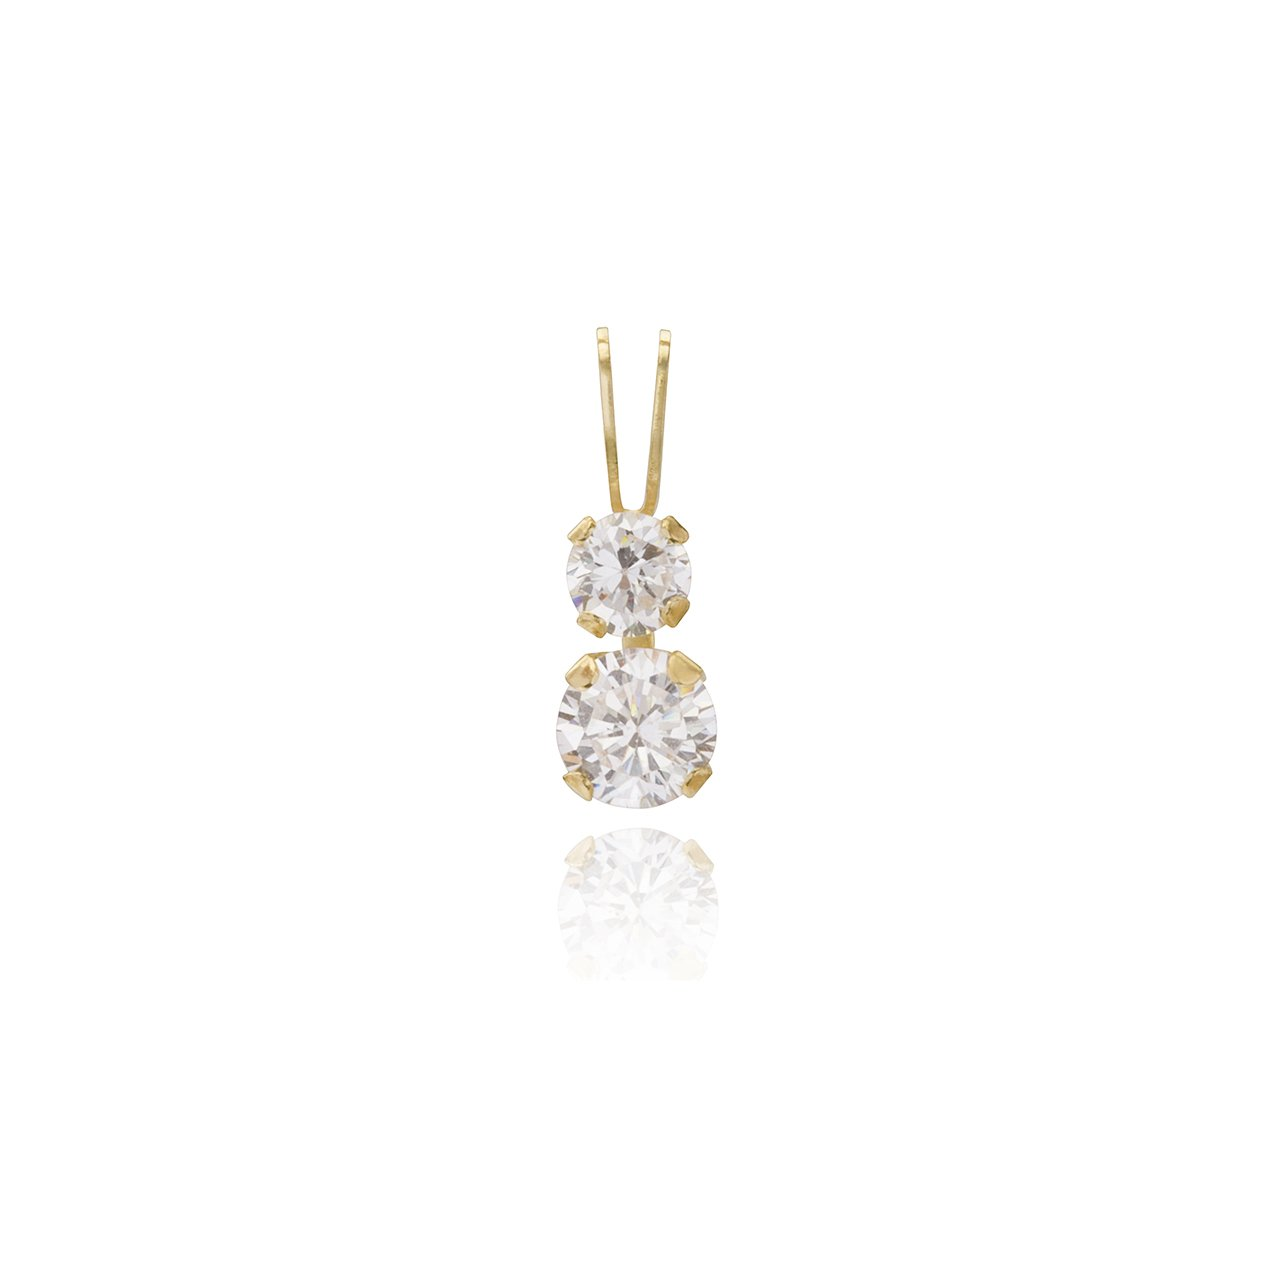 9ct Gold CZ Teardrop Pendant no chain Gift Boxed Made in UK